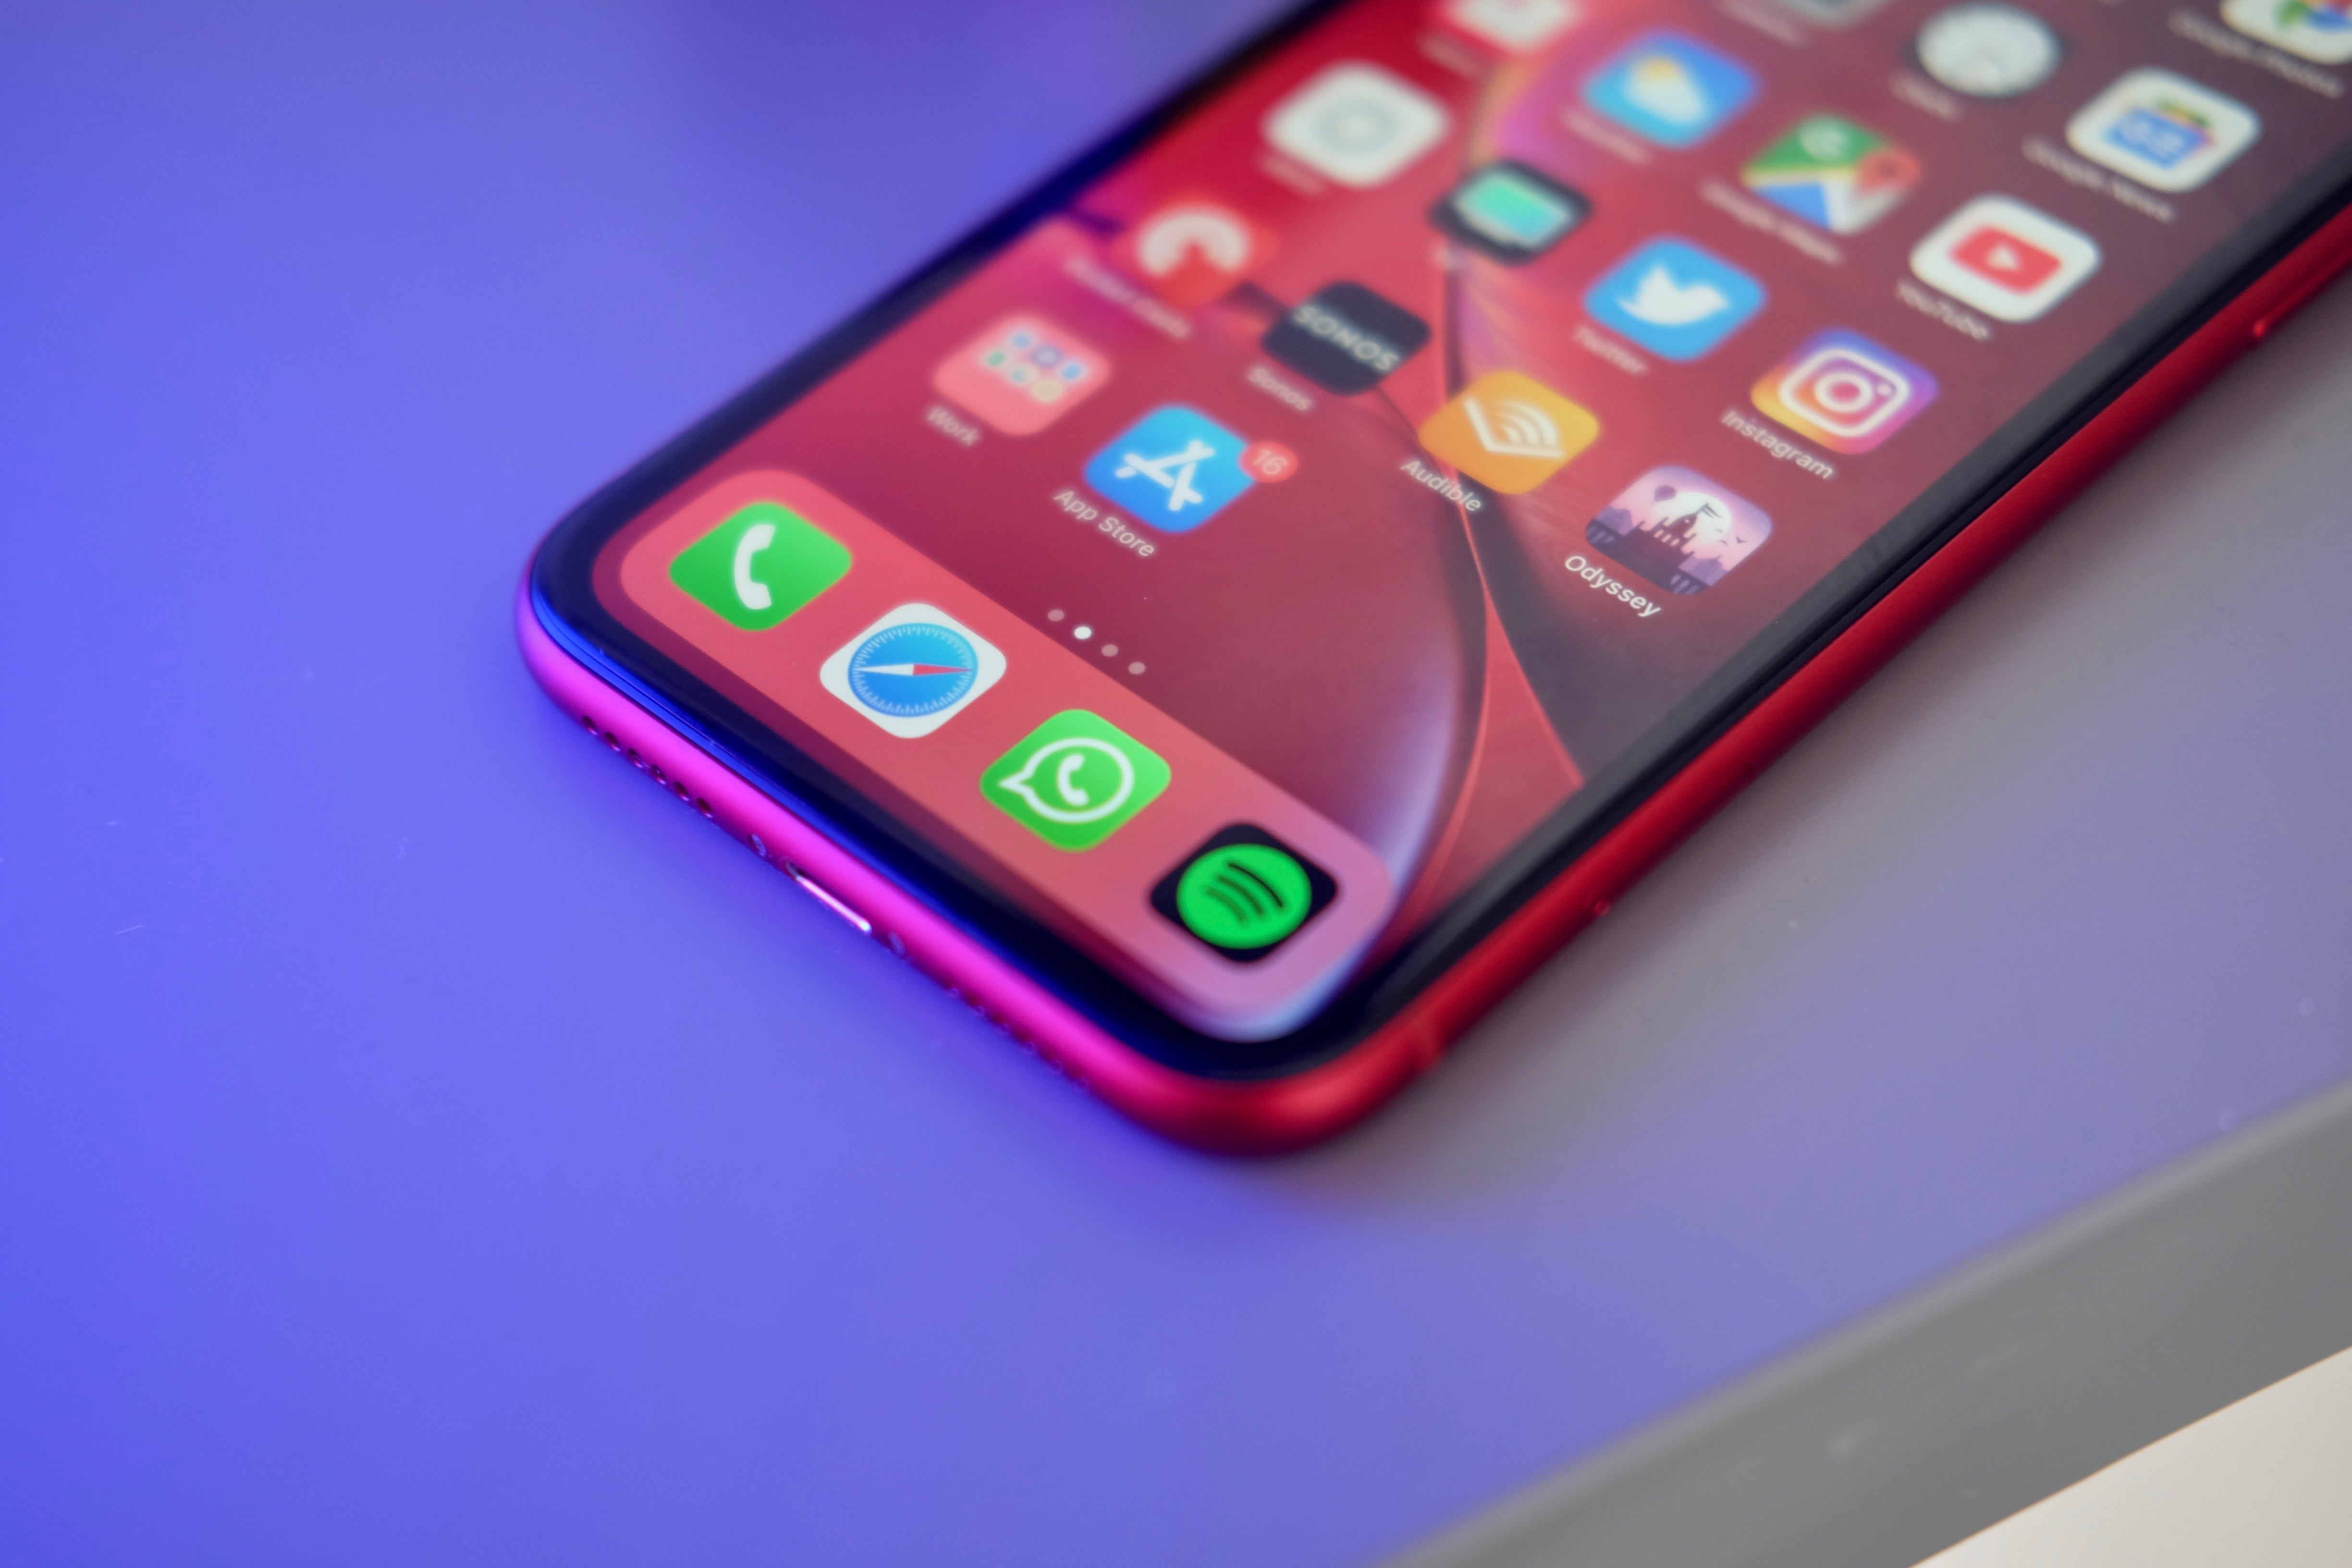 iPhone XR problems continue to plague Apple despite hefty price slash